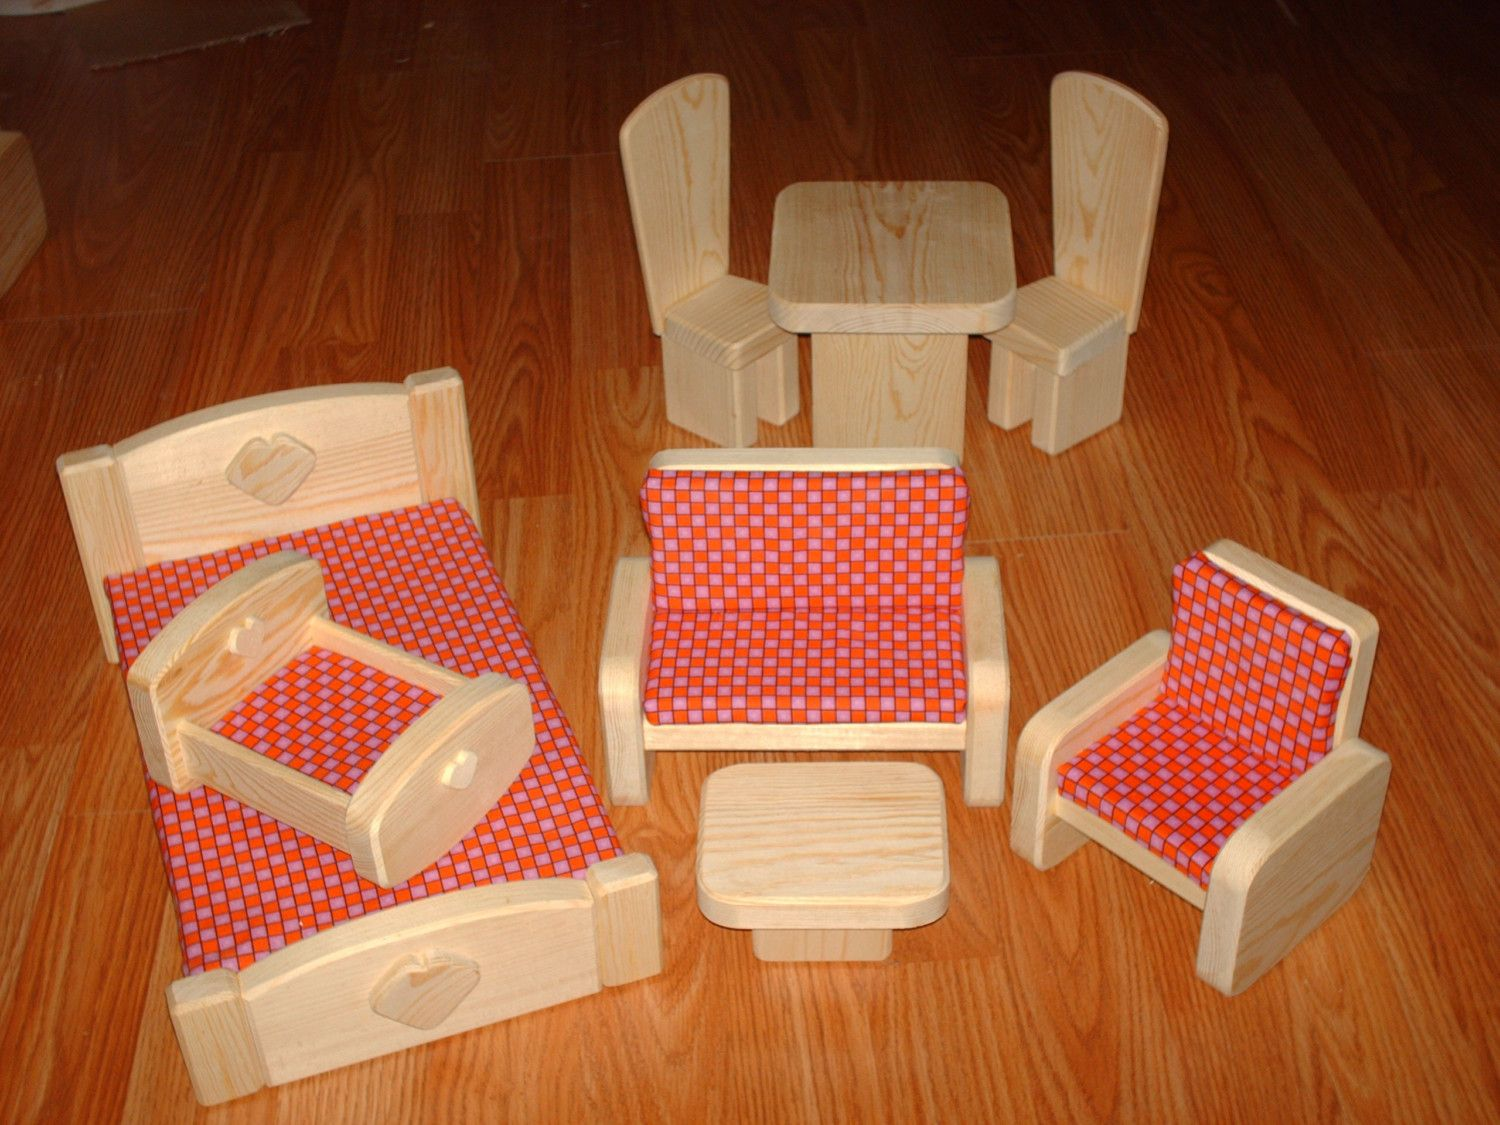 barbie wood furniture. 8-piece Barbie Scaled Wooden Furniture Set (red Checkered). $39.95, Via Wood R